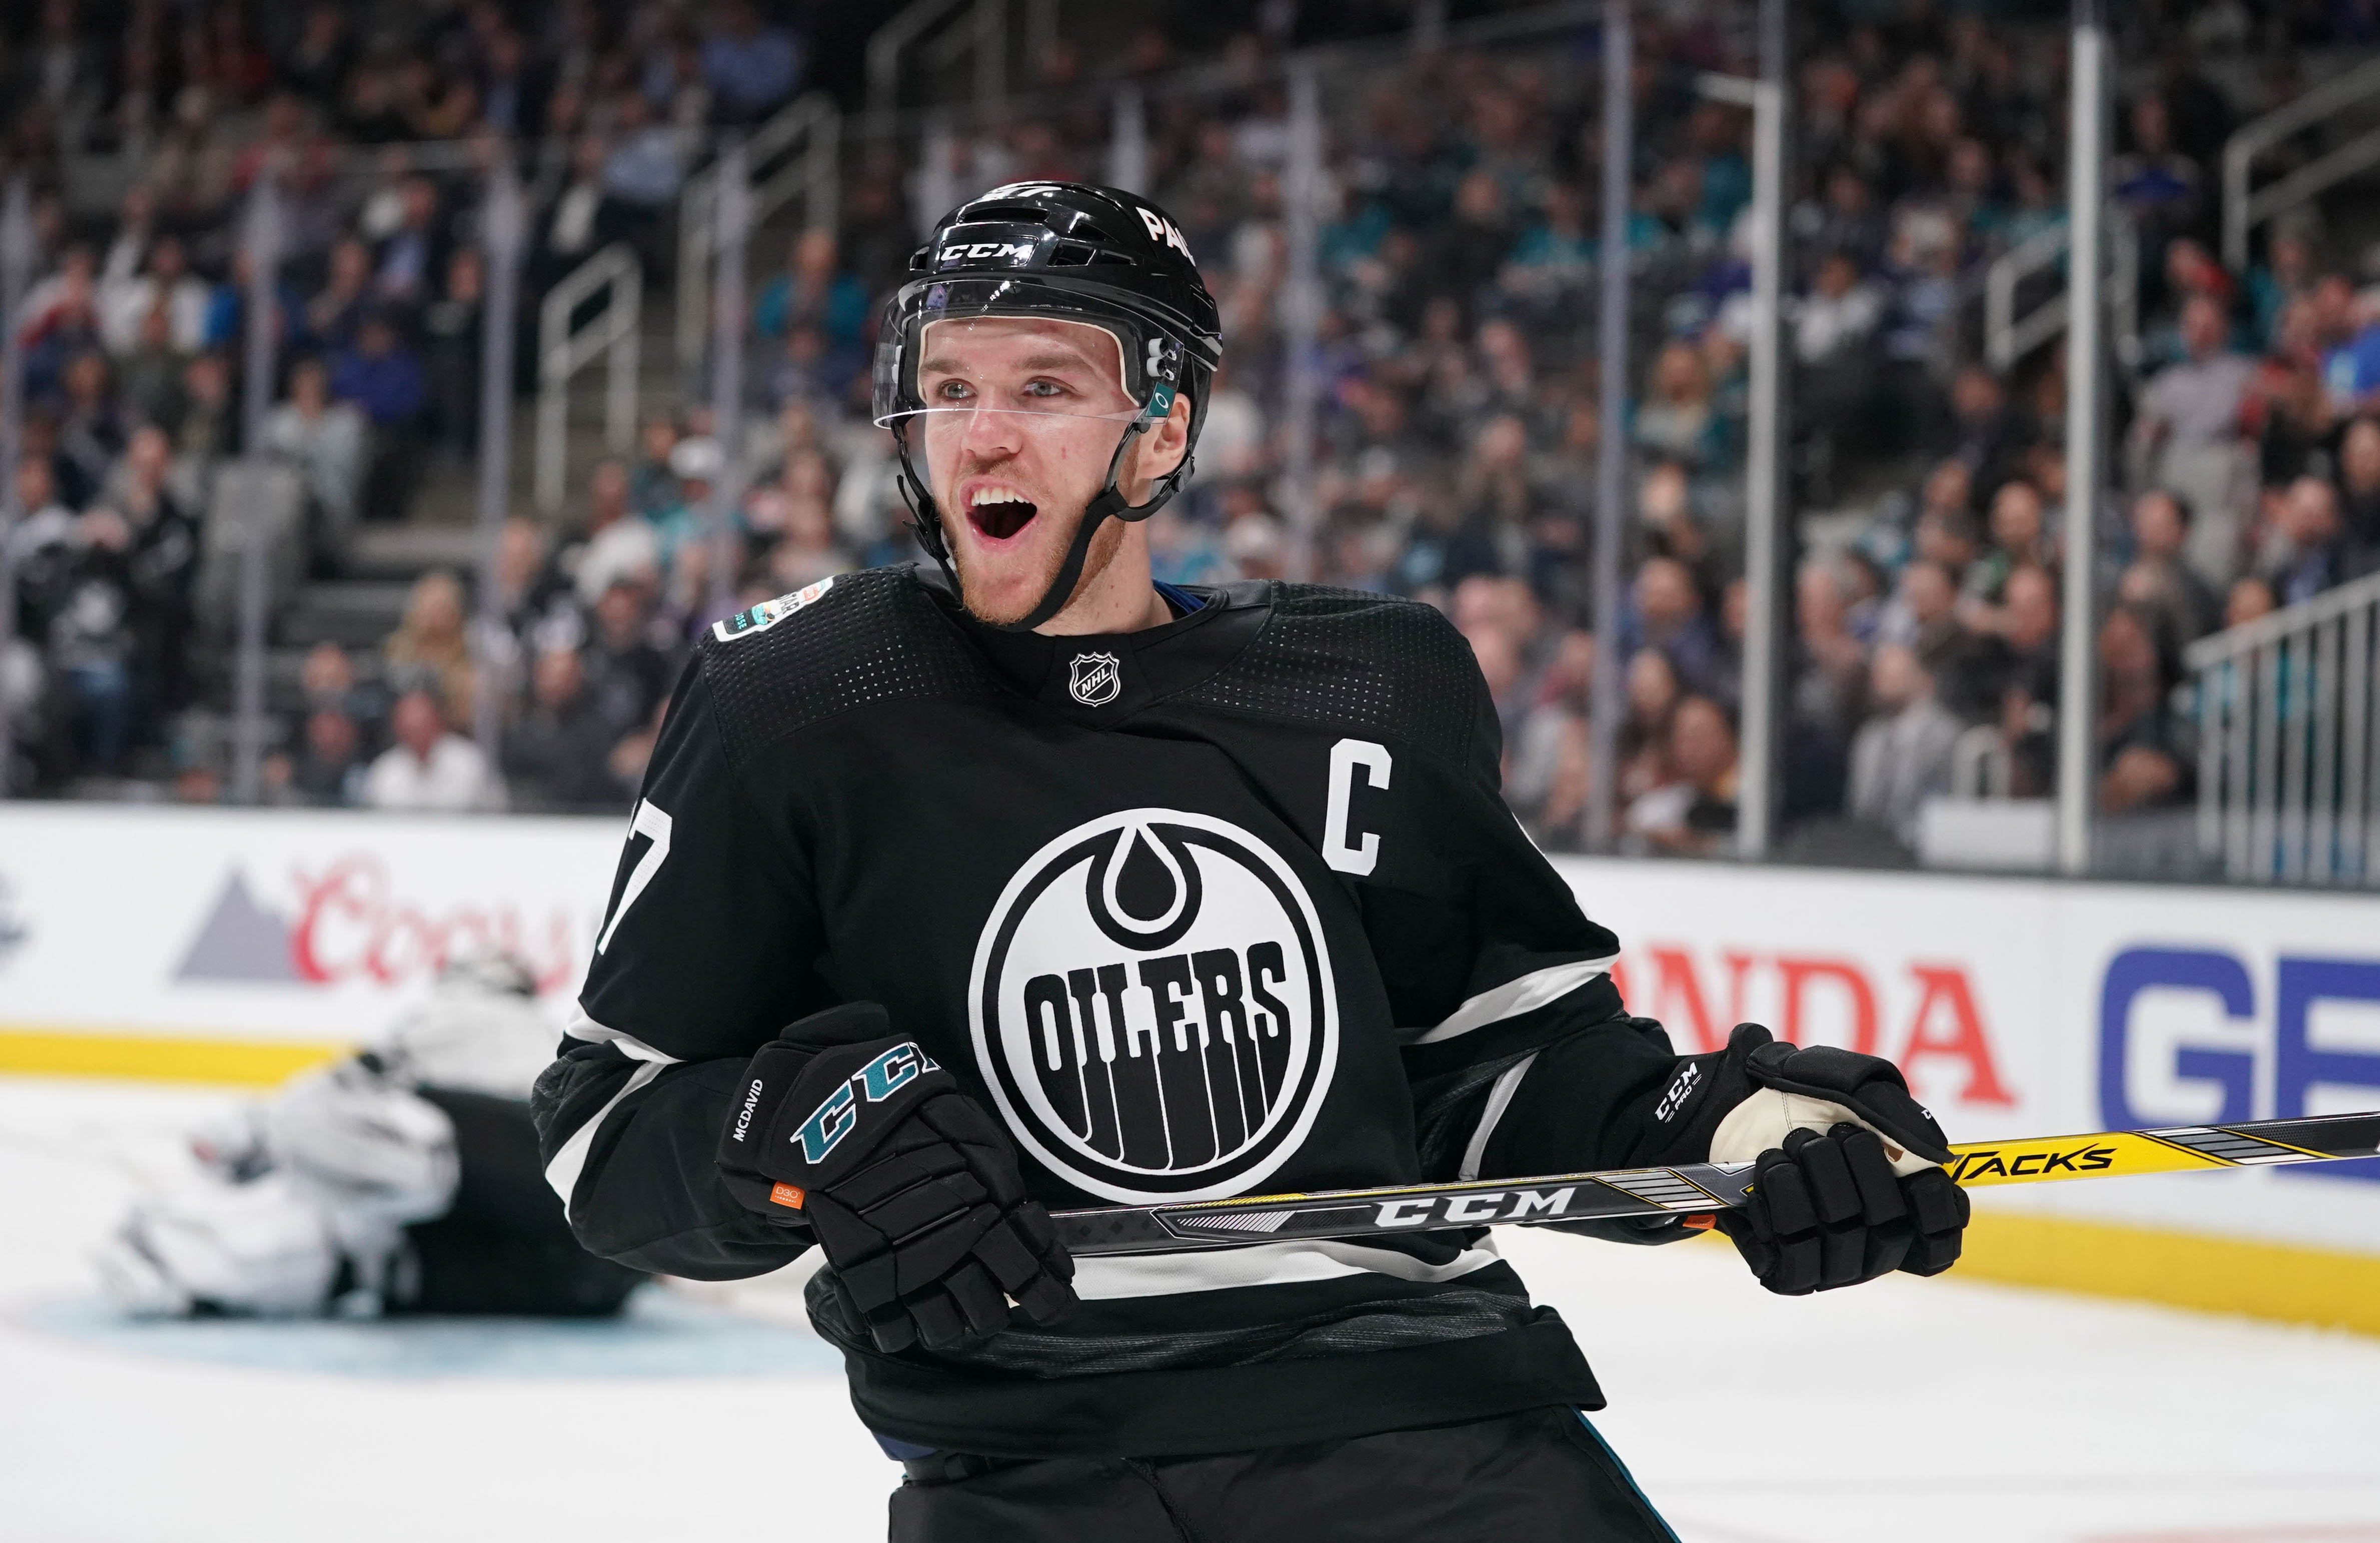 Jan 26, 2019; San Jose, CA, USA; Pacific Division player Connor McDavid (97) of the Edmonton Oilers celebrates after a goal against the Central division in the 2019 NHL All Star Game at SAP Center.